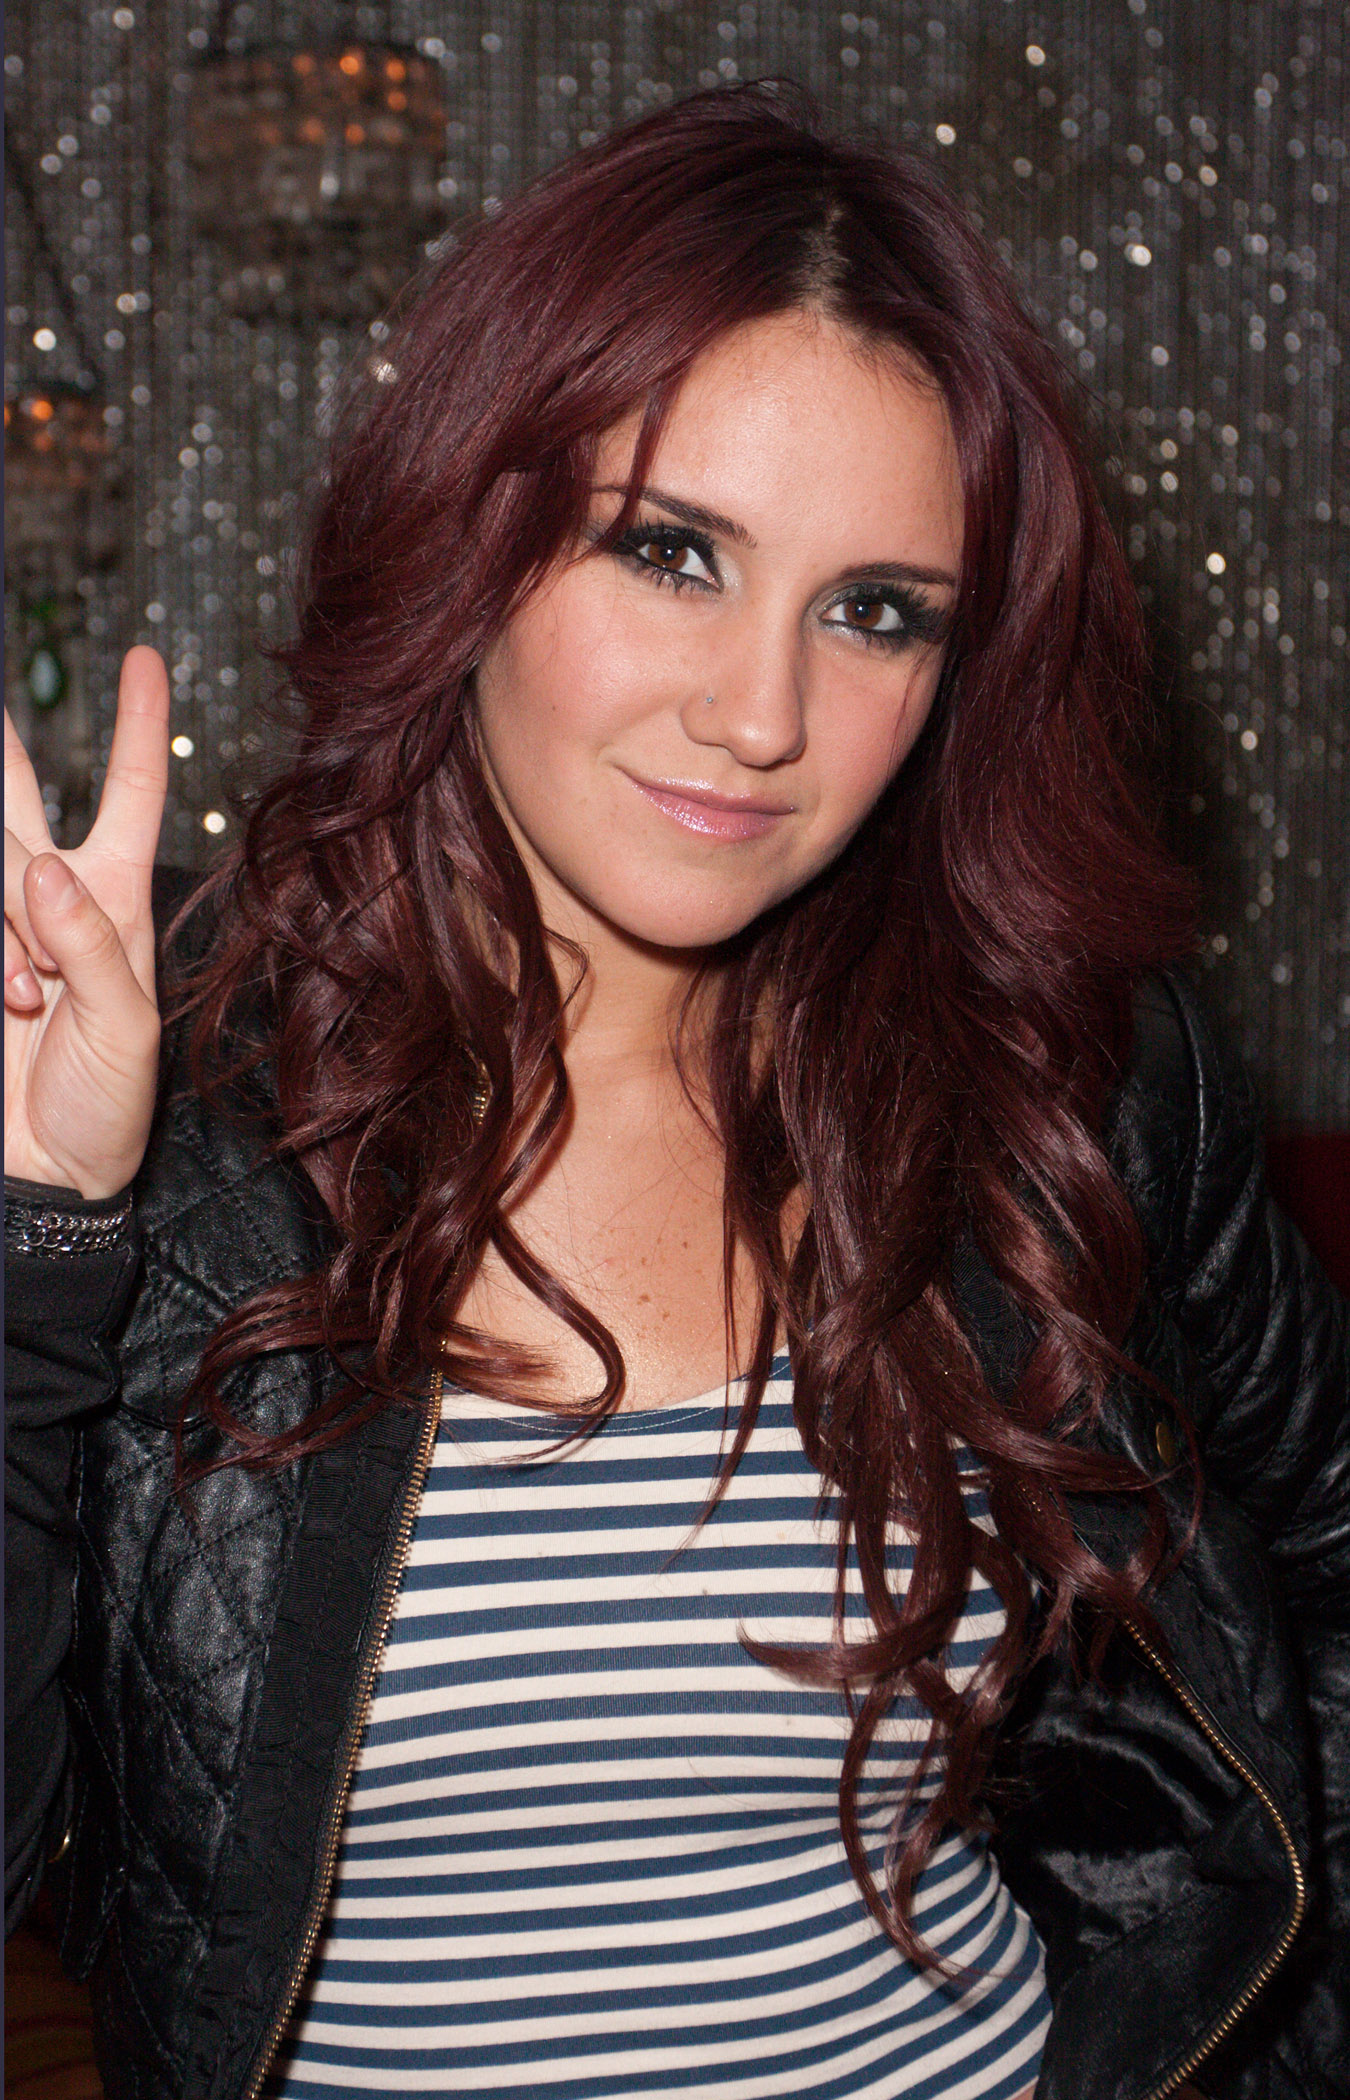 Fotos Dulce Maria naked (53 photos), Pussy, Bikini, Boobs, see through 2006